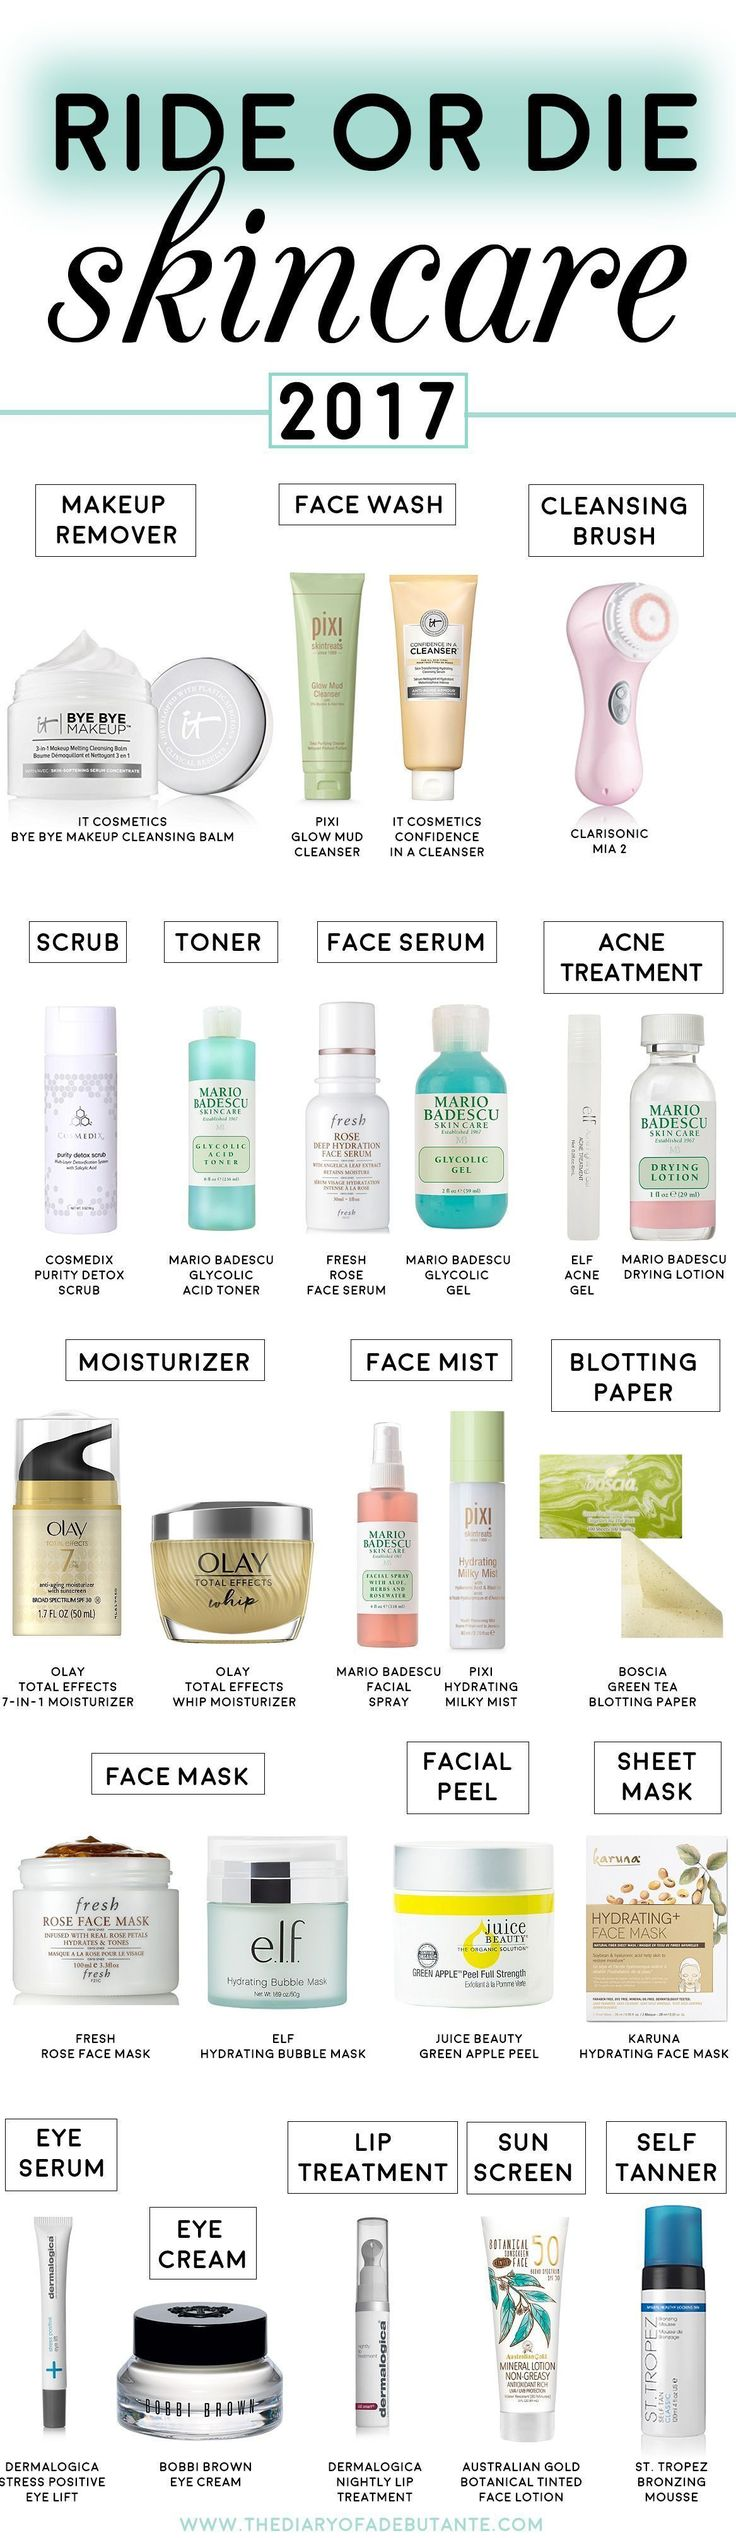 Best skin and facial products for oily combination skin | Best #skincare products for acne prone skin | Ride or Die Skincare | Best anti-aging skin products | Ride or Die Beauty: Best Skincare Products of 2017 by fashion and beauty blogger Stephanie Ziajka from Diary of a Debutante